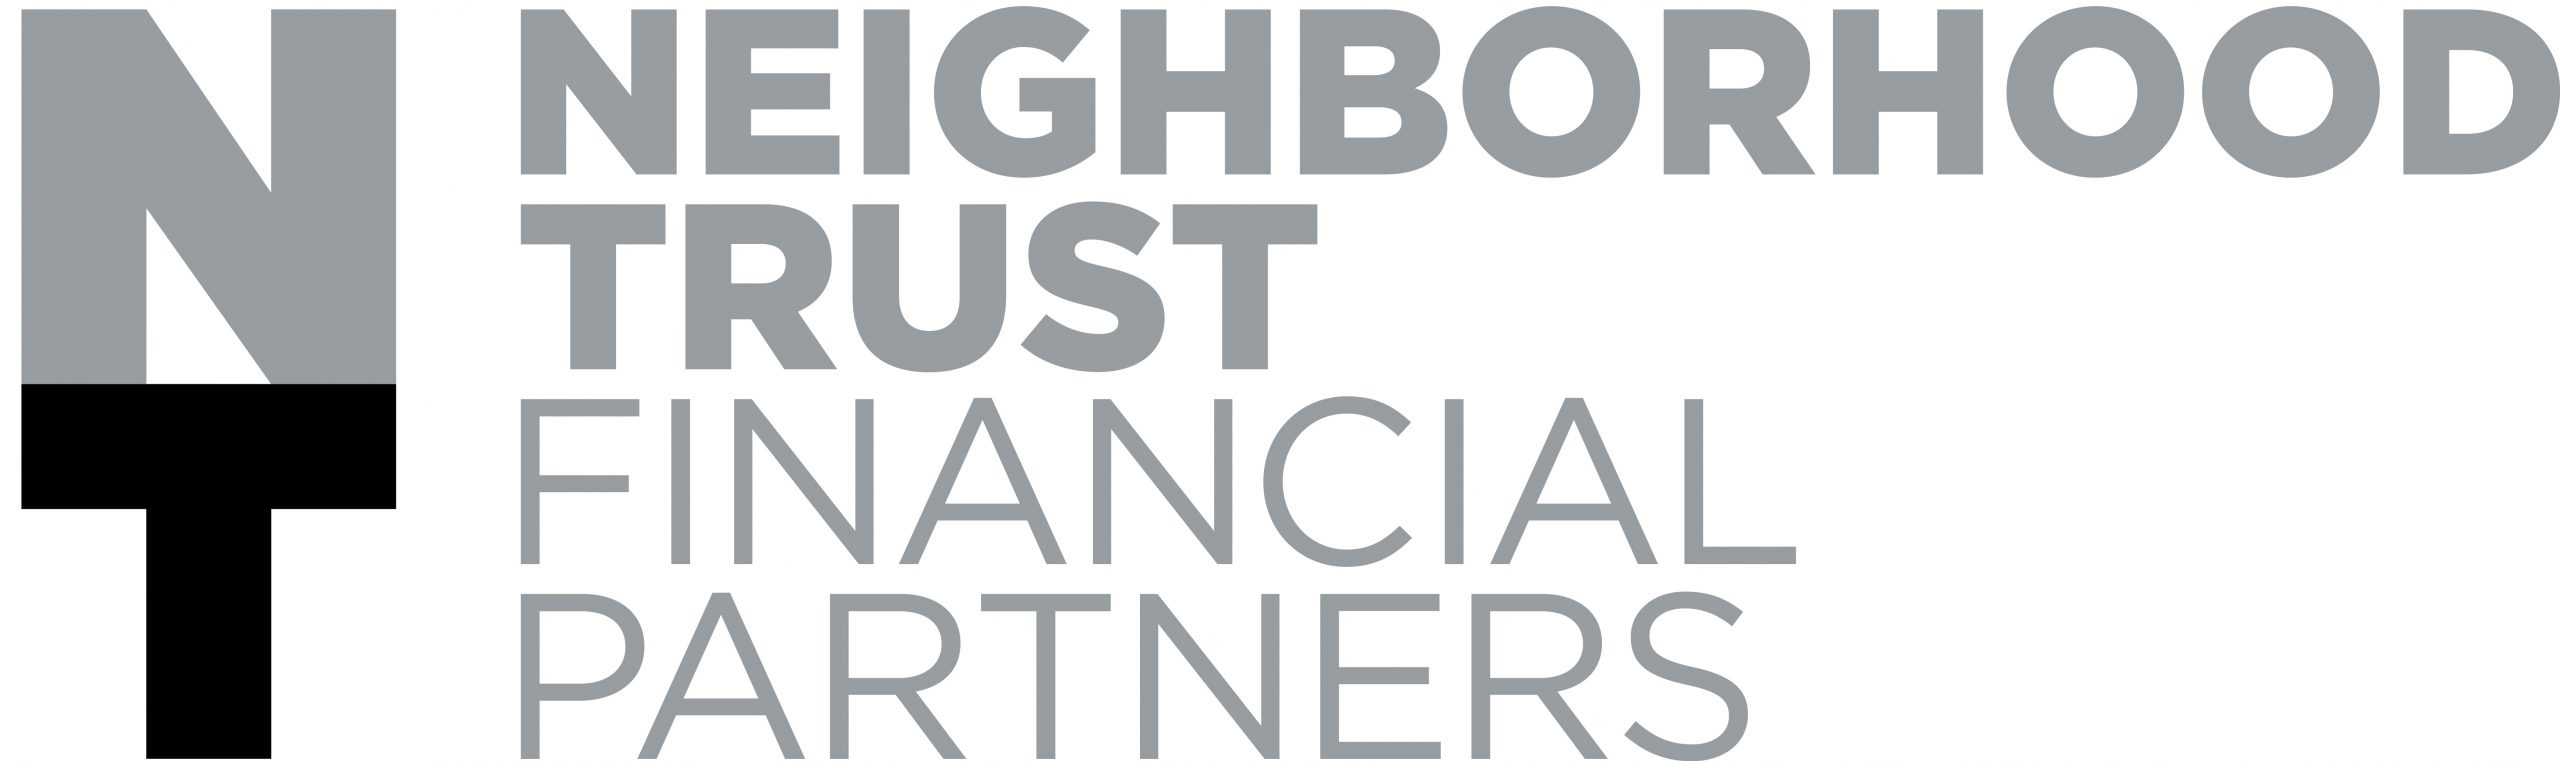 Neighborhood Trust Financial Partners